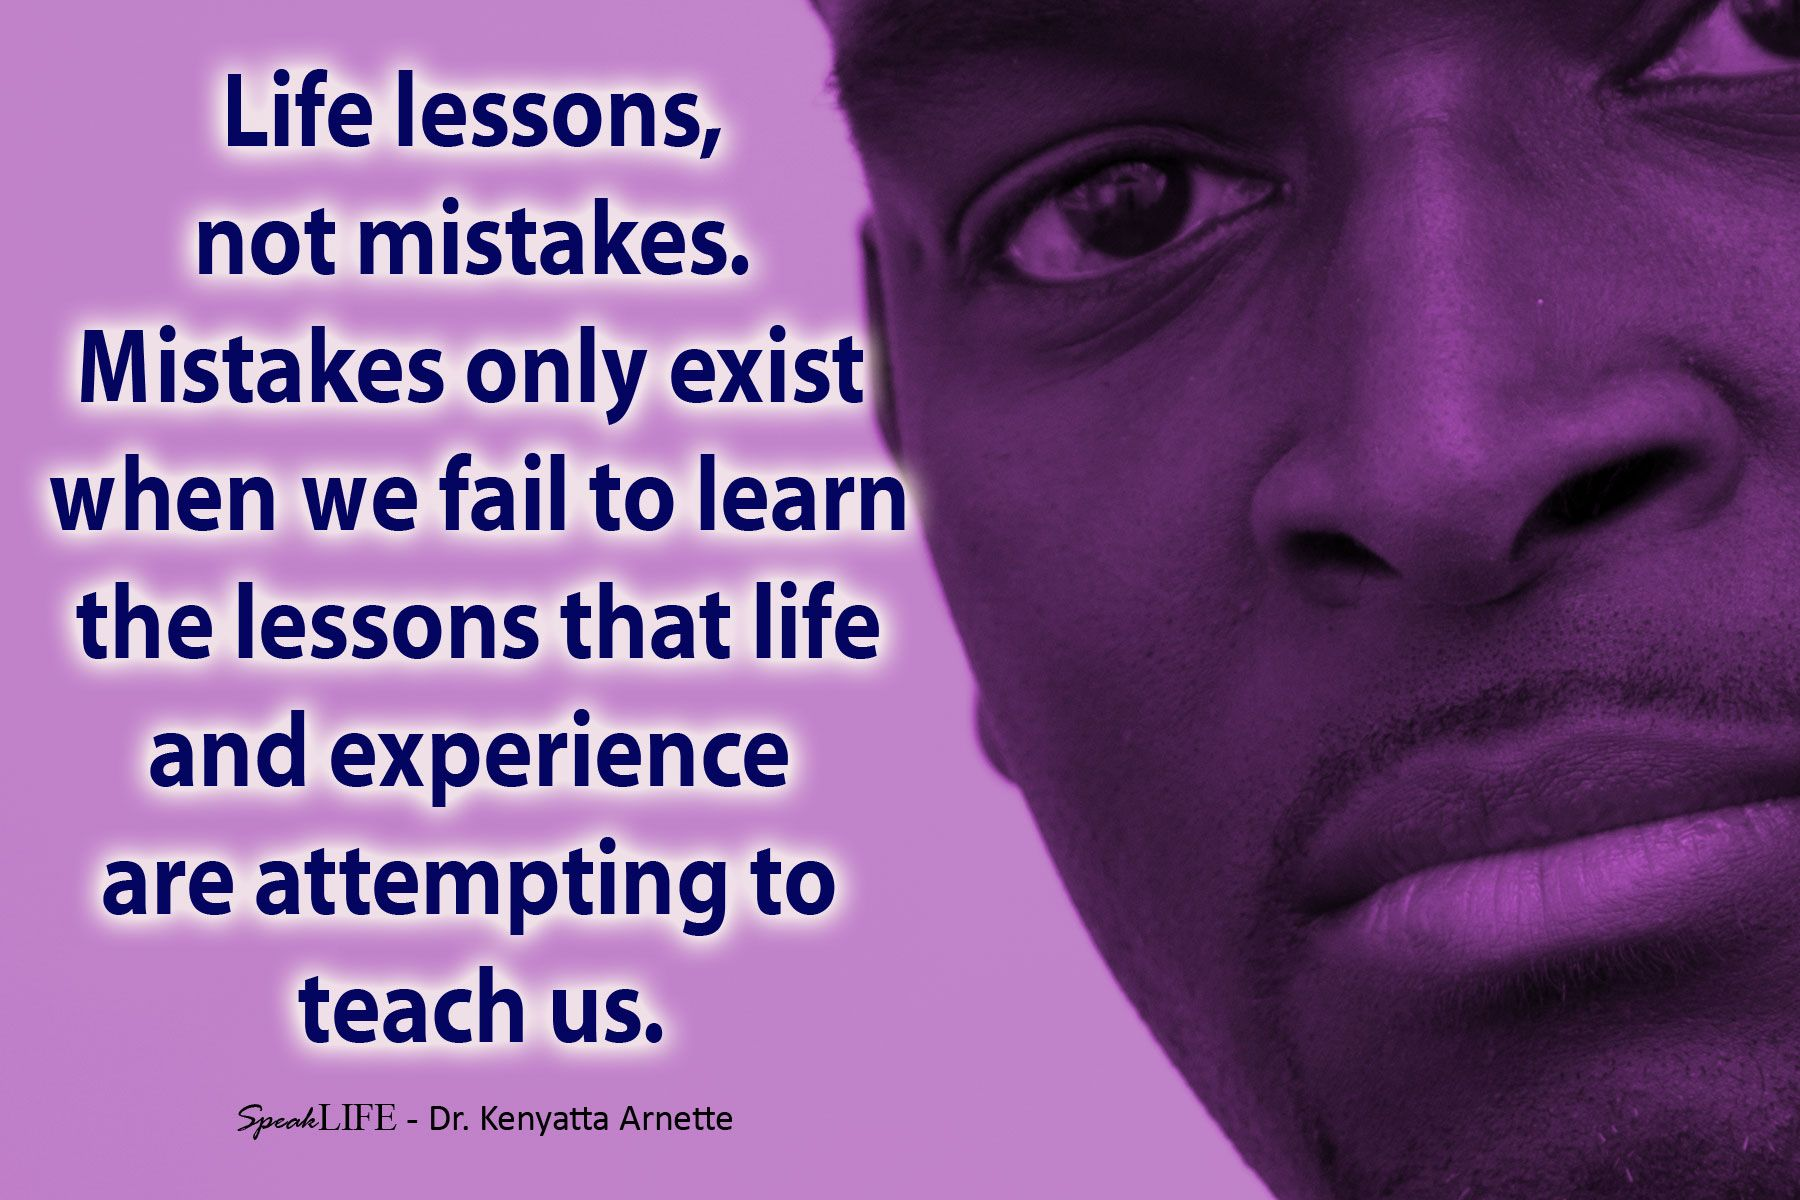 Life lessons not mistakes | Life lessons, Encouragement ...